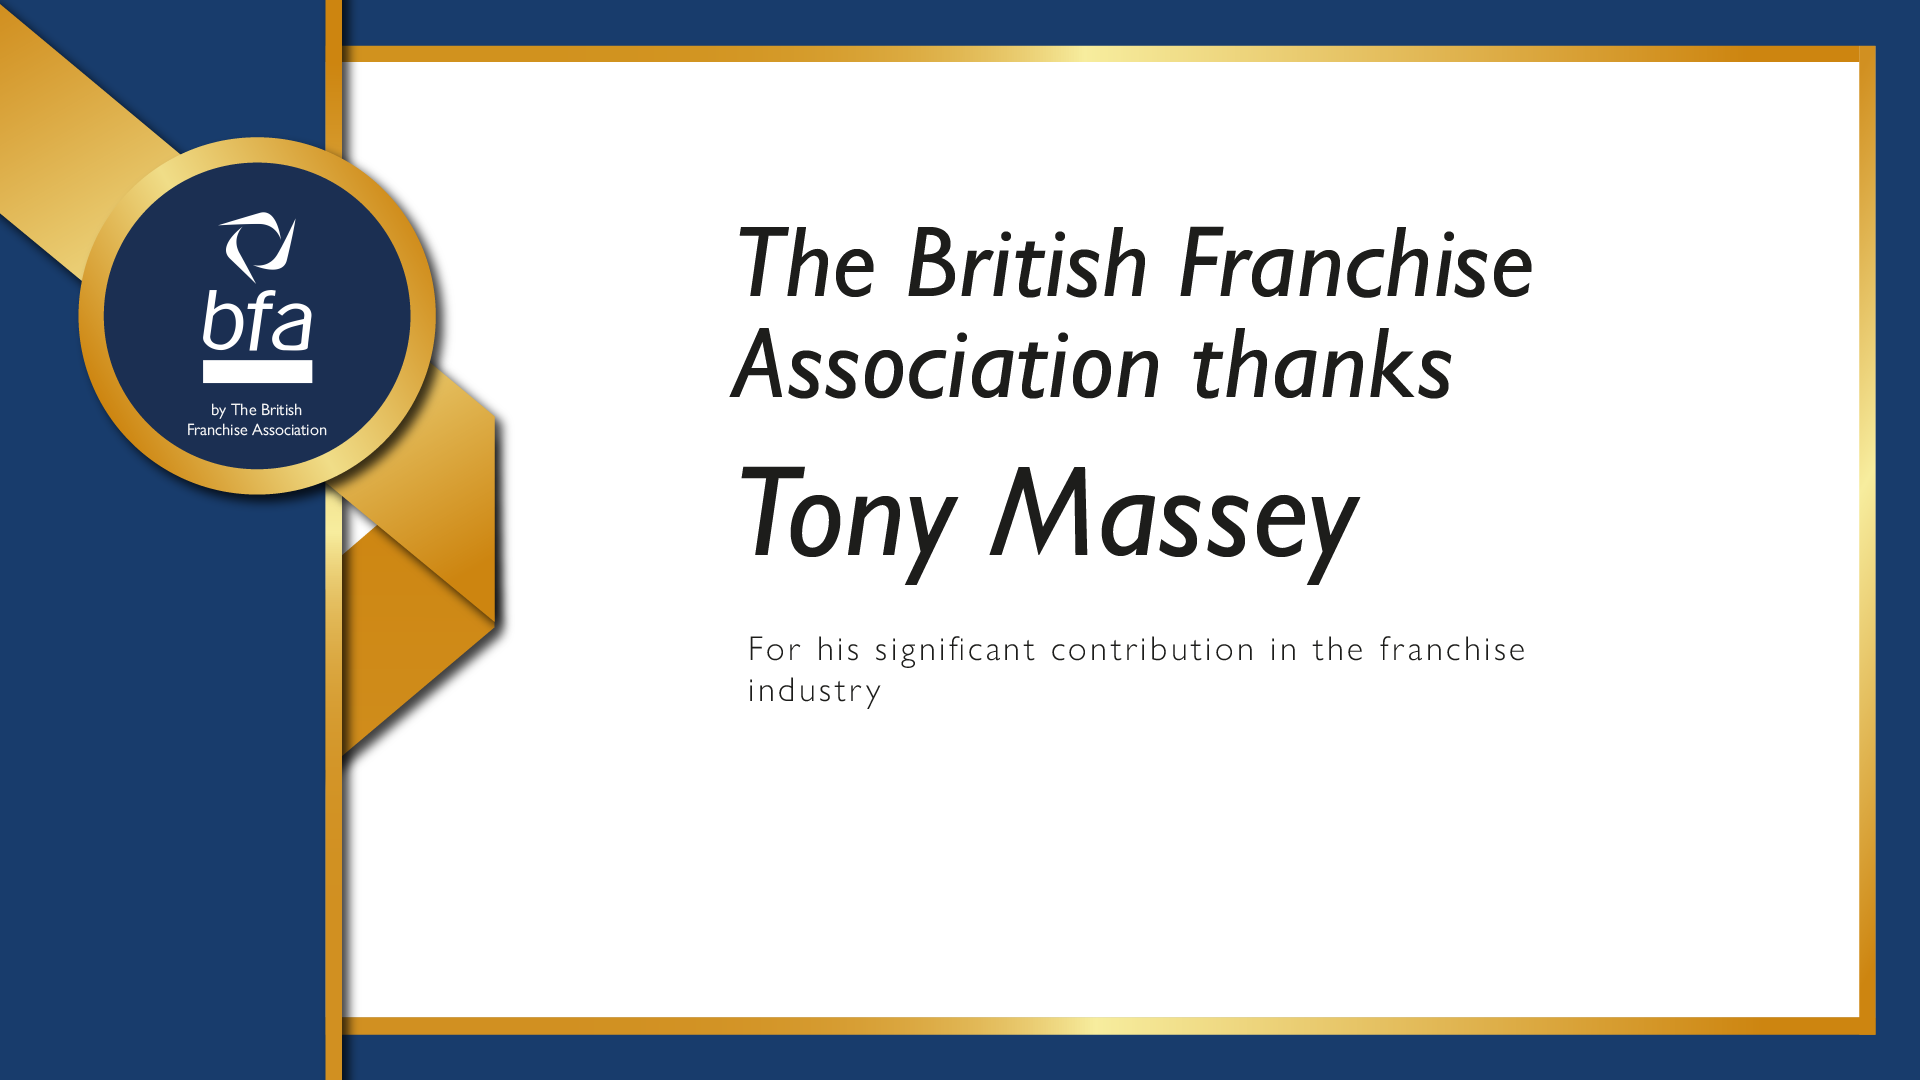 First ever Franchise Excellence Award goes to Tony Massey, HSBC UK Bank, for his significant contribution to the franchise sector!